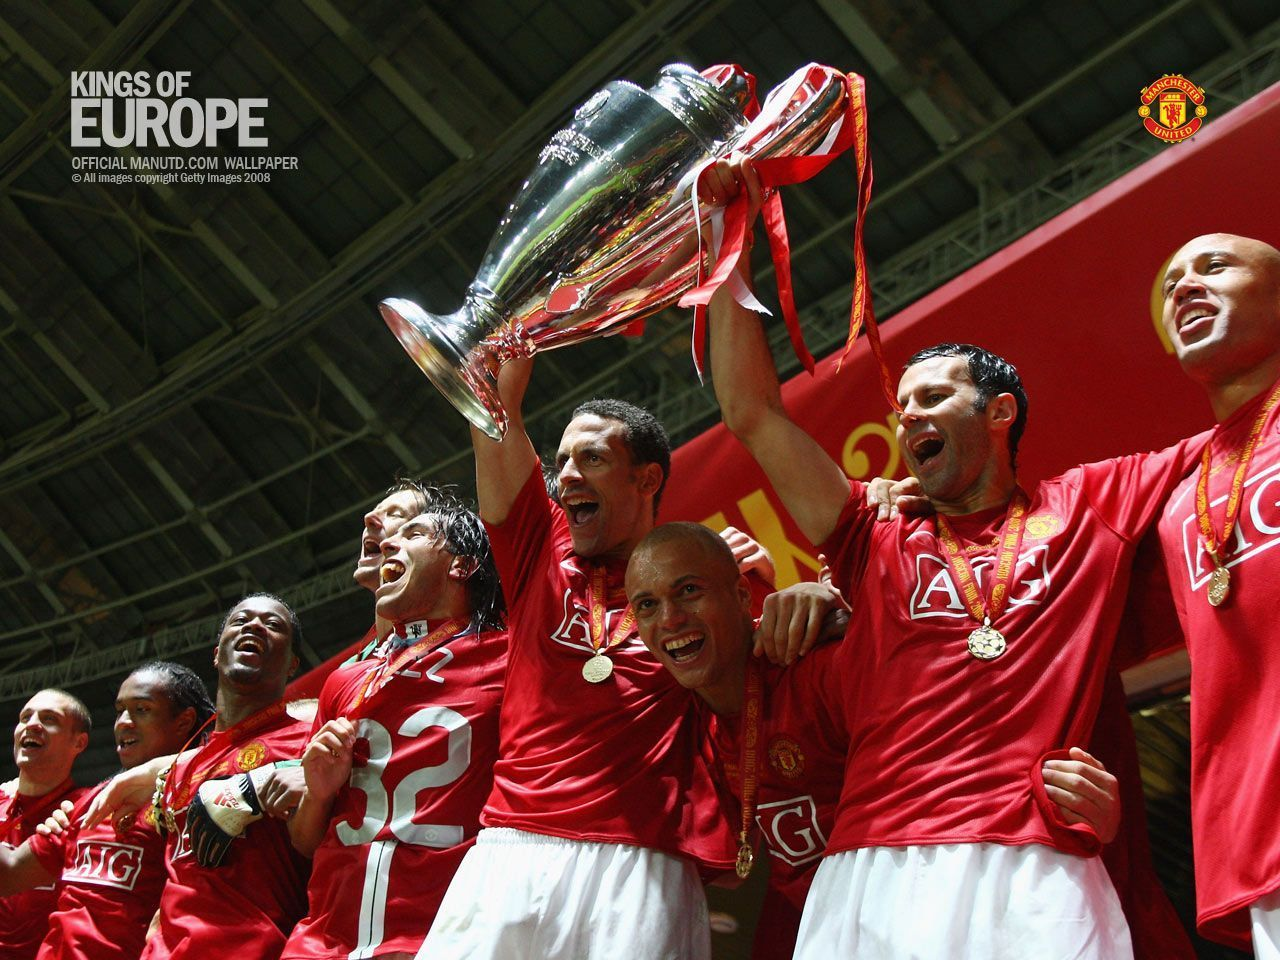 world cup,world cup 2010, South Africa, football, soccer, manchester united wallpaper Team